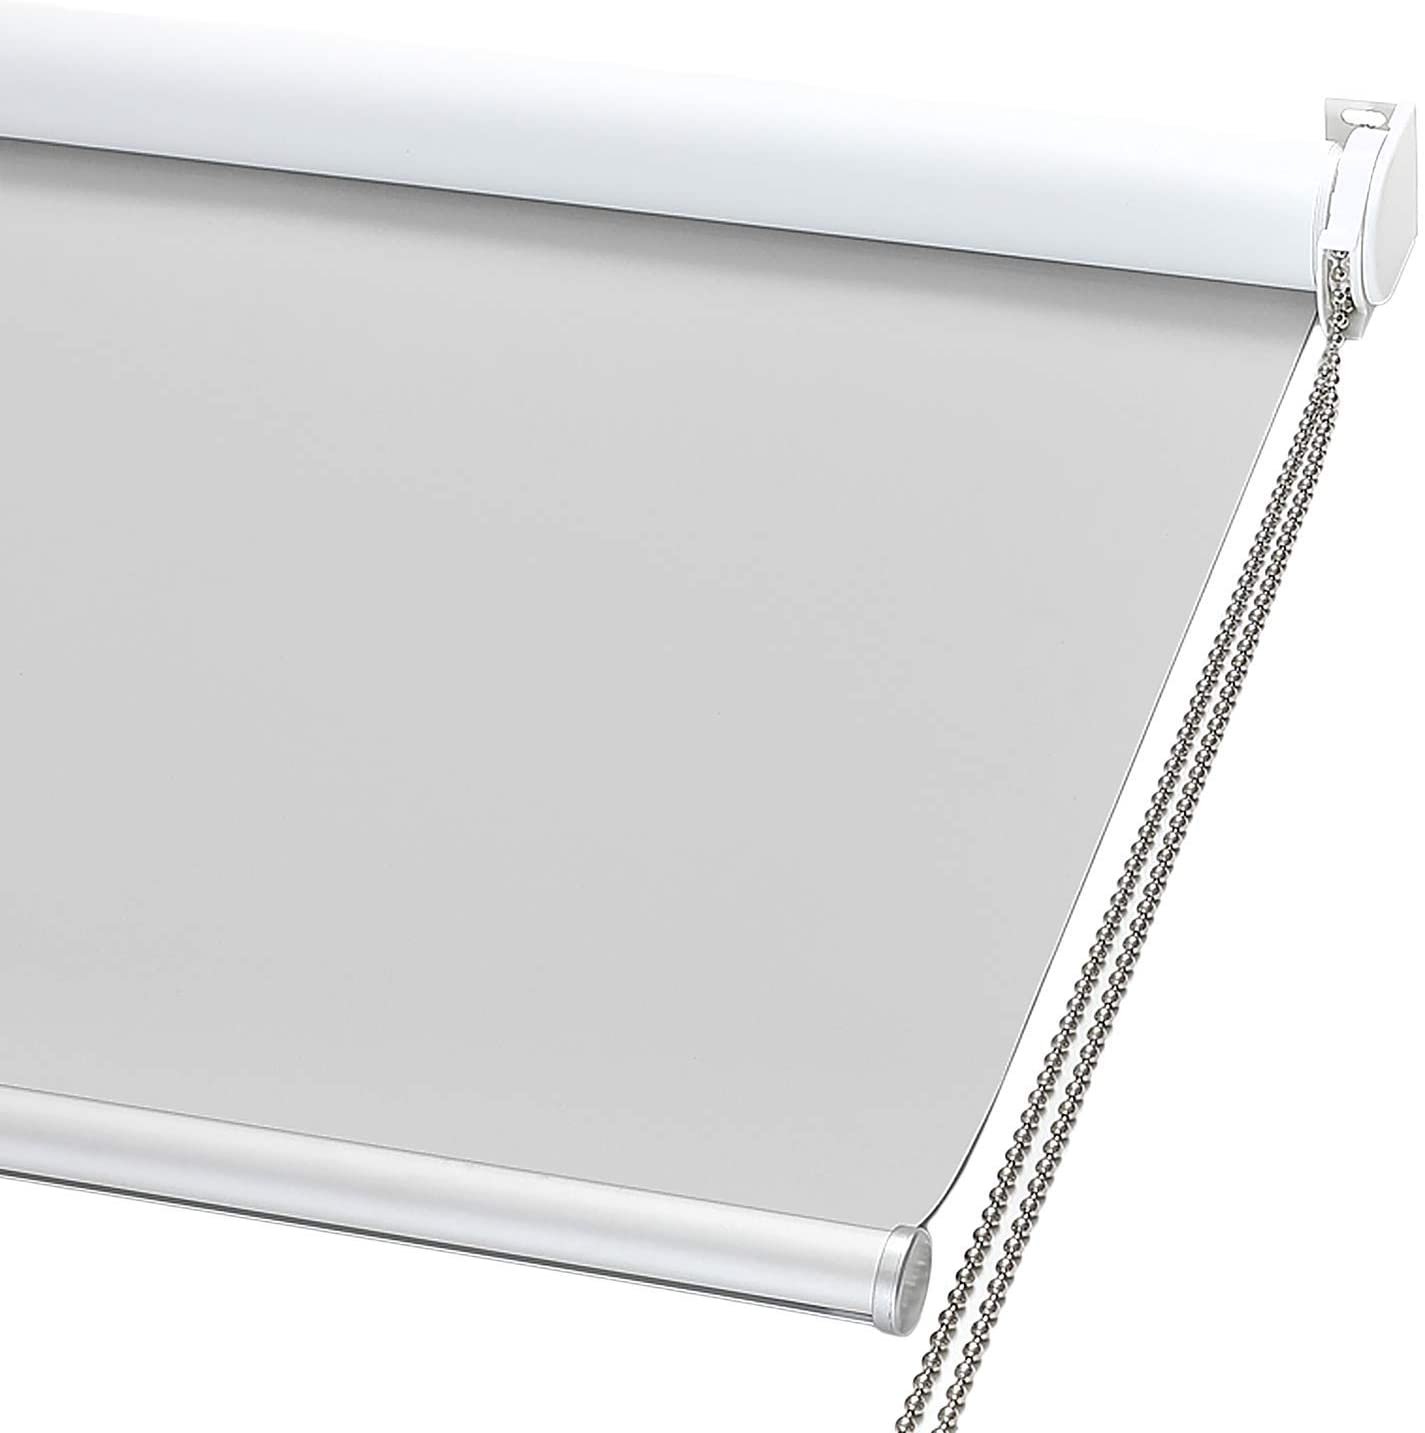 Max 49% OFF ChrisDowa Year-end gift 100% Blackout Roller Shade Blind Thermal with Window